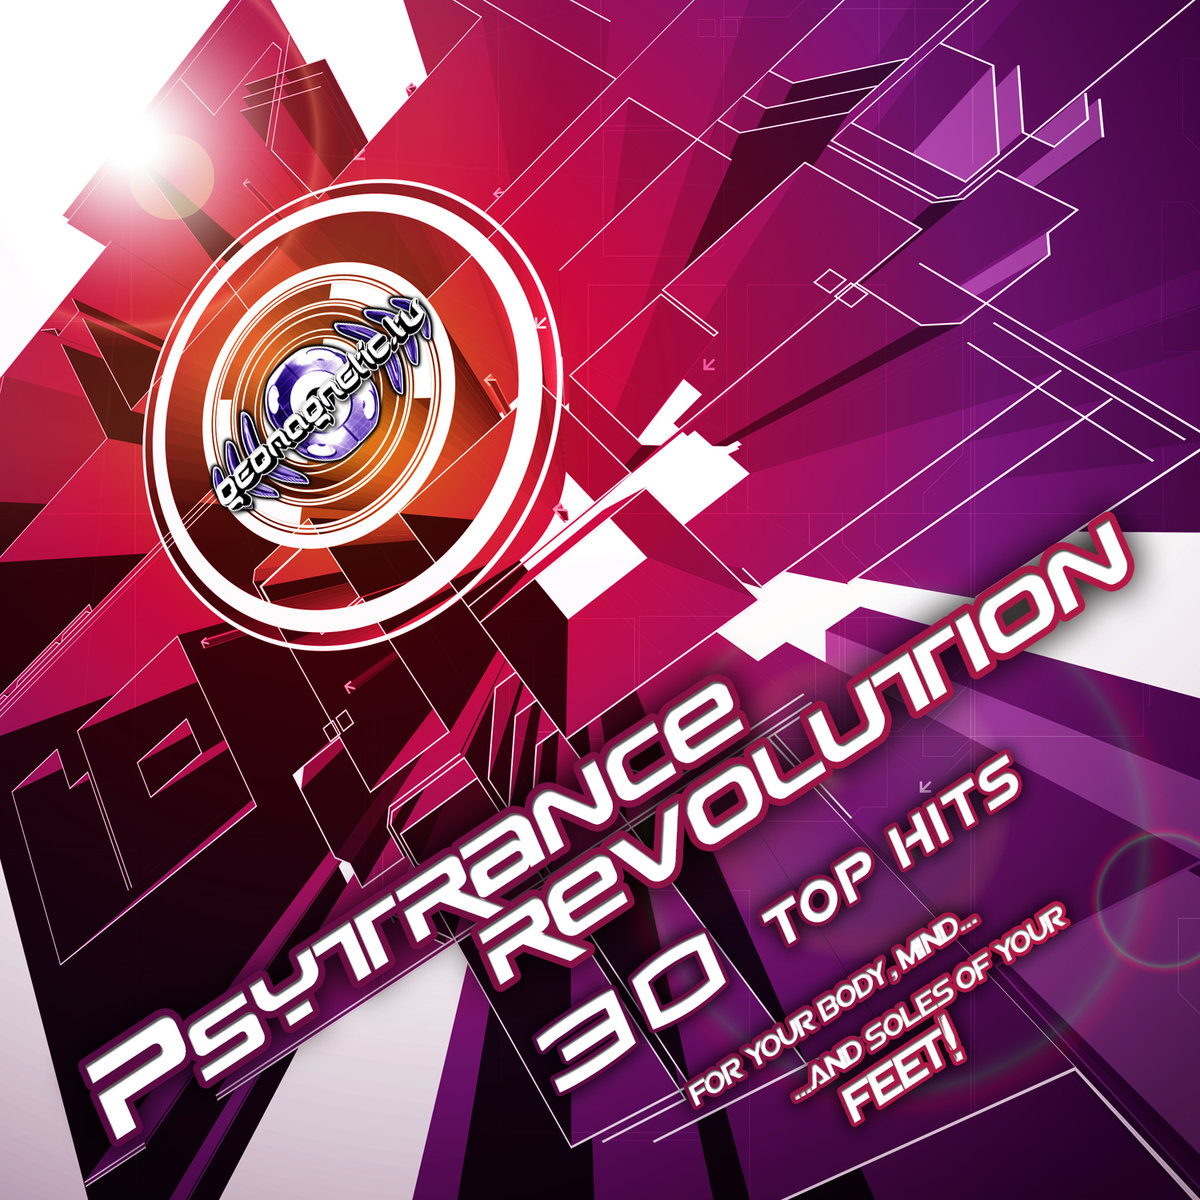 Triscele - Space Invaders @ 'Various Artists - Psytrance Revolution (30 Top Hits)' album (electronic, goa)